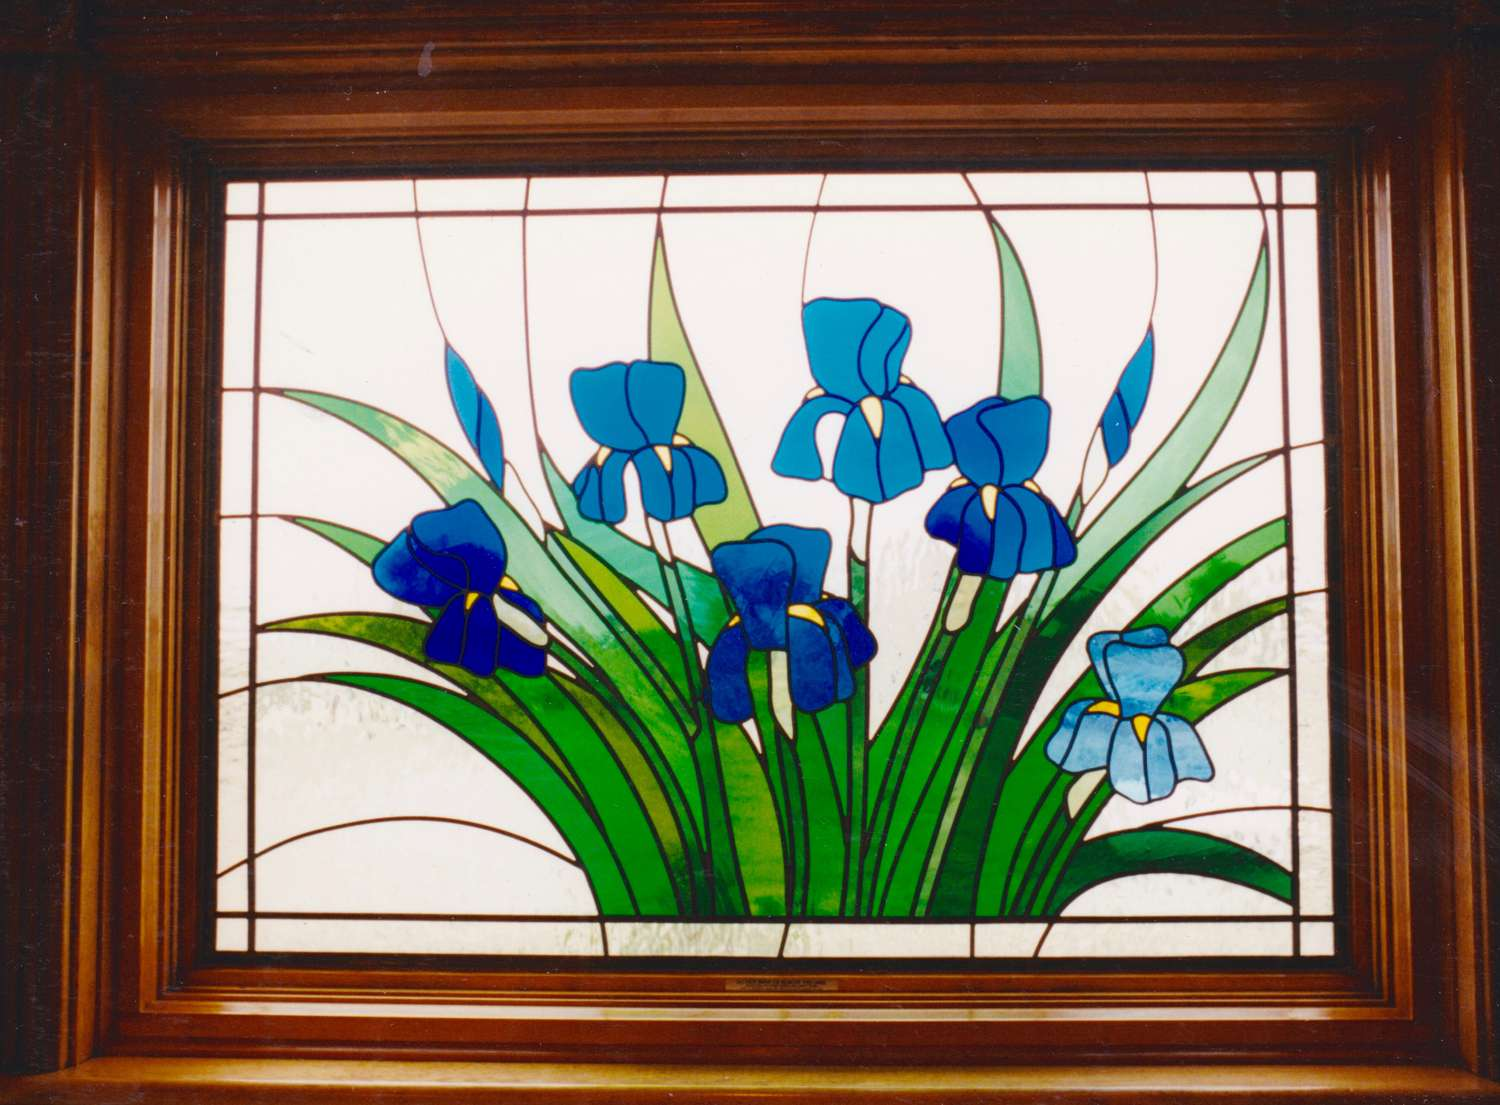 Van Gogh Iris window